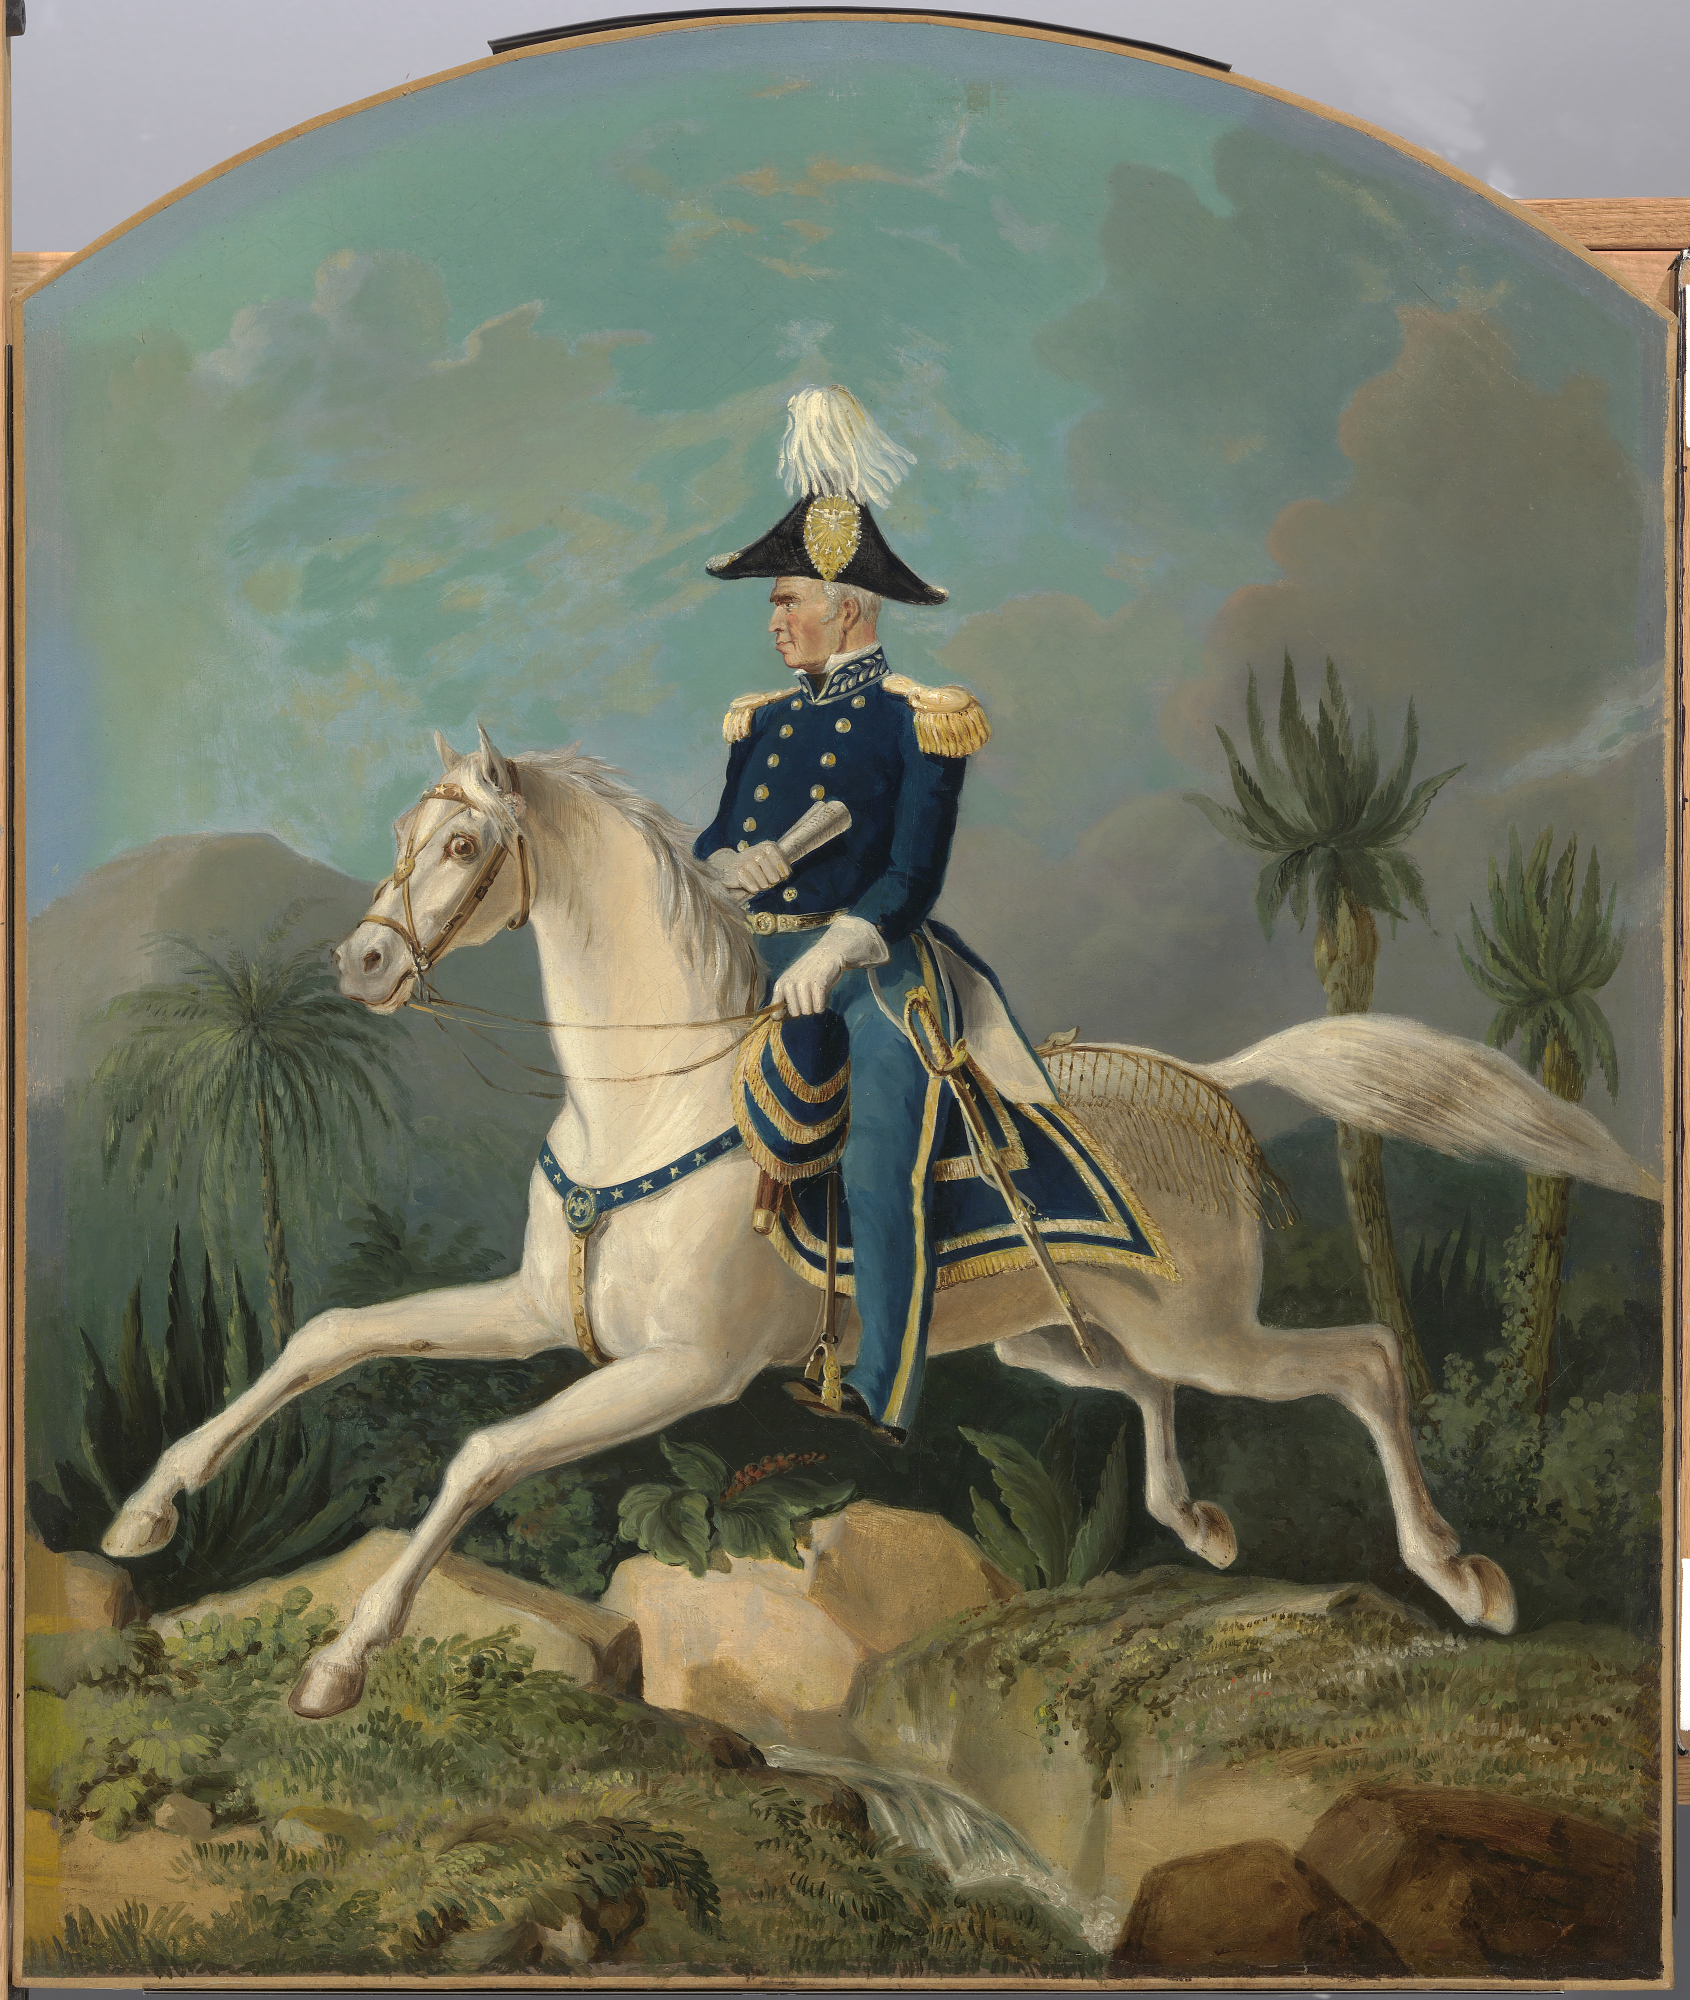 File:James Walker - Zachary Taylor - NPG 72 26 - National